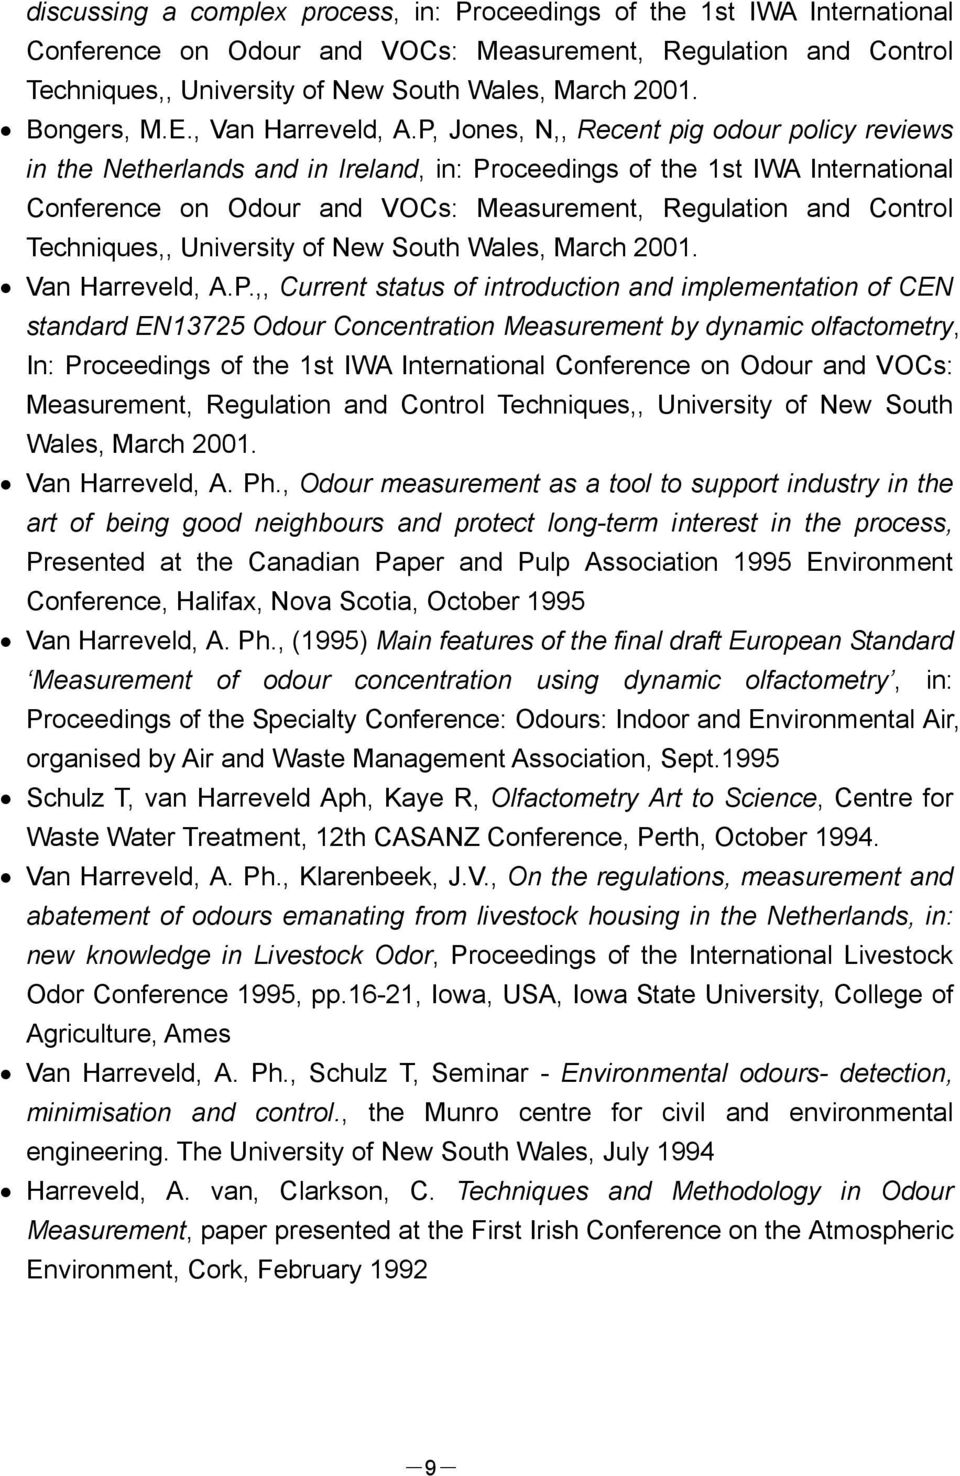 P, Jones, N,, Recent pig odour policy reviews in the Netherlands and in Ireland, in: Proceedings of the 1st IWA International Conference on Odour and VOCs: Measurement, Regulation and Control